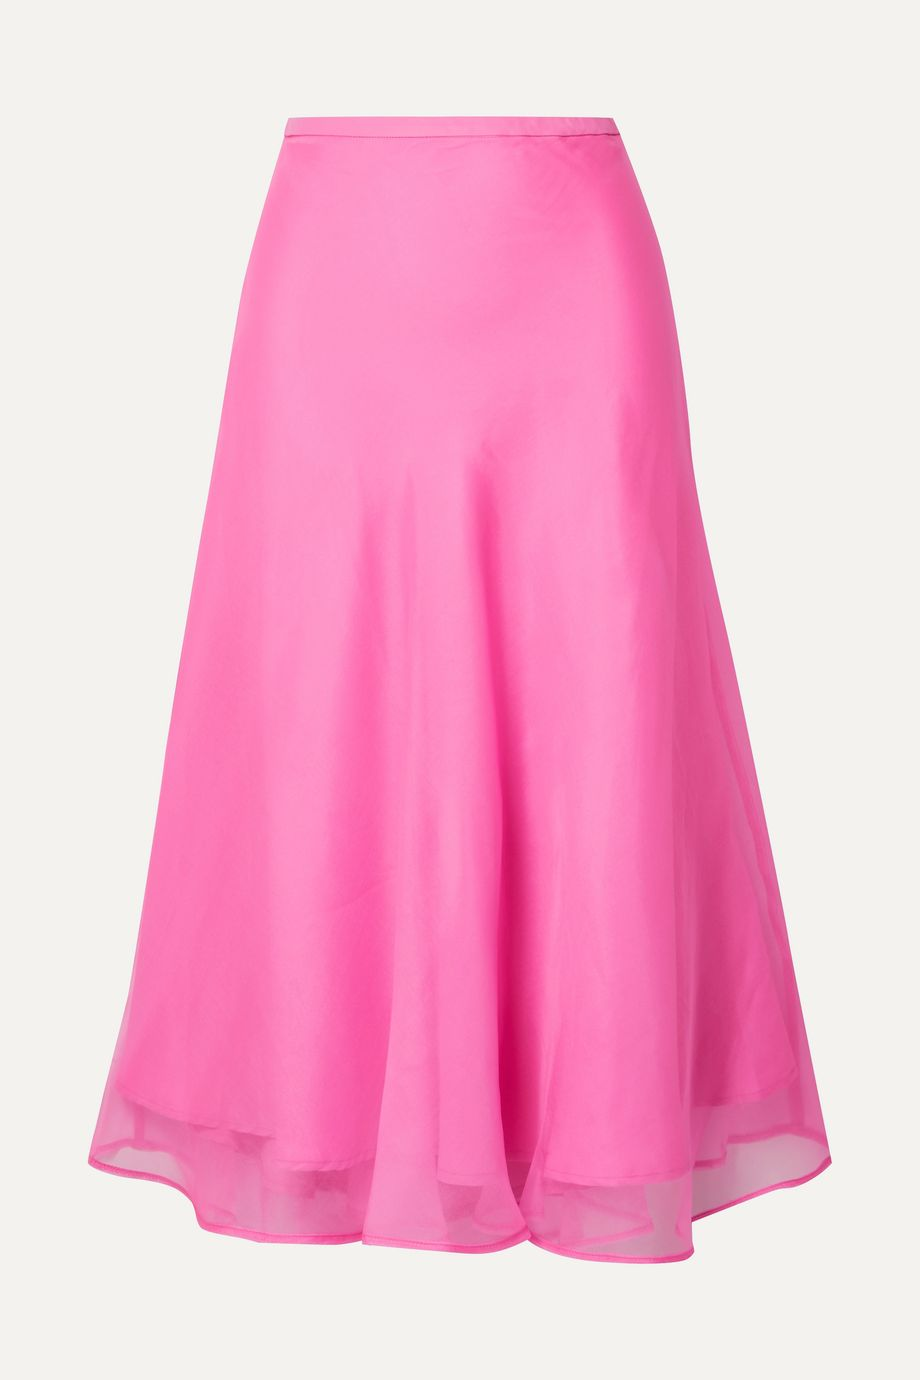 Maggie Marilyn + NET SUSTAIN Because We Can silk-organza midi skirt